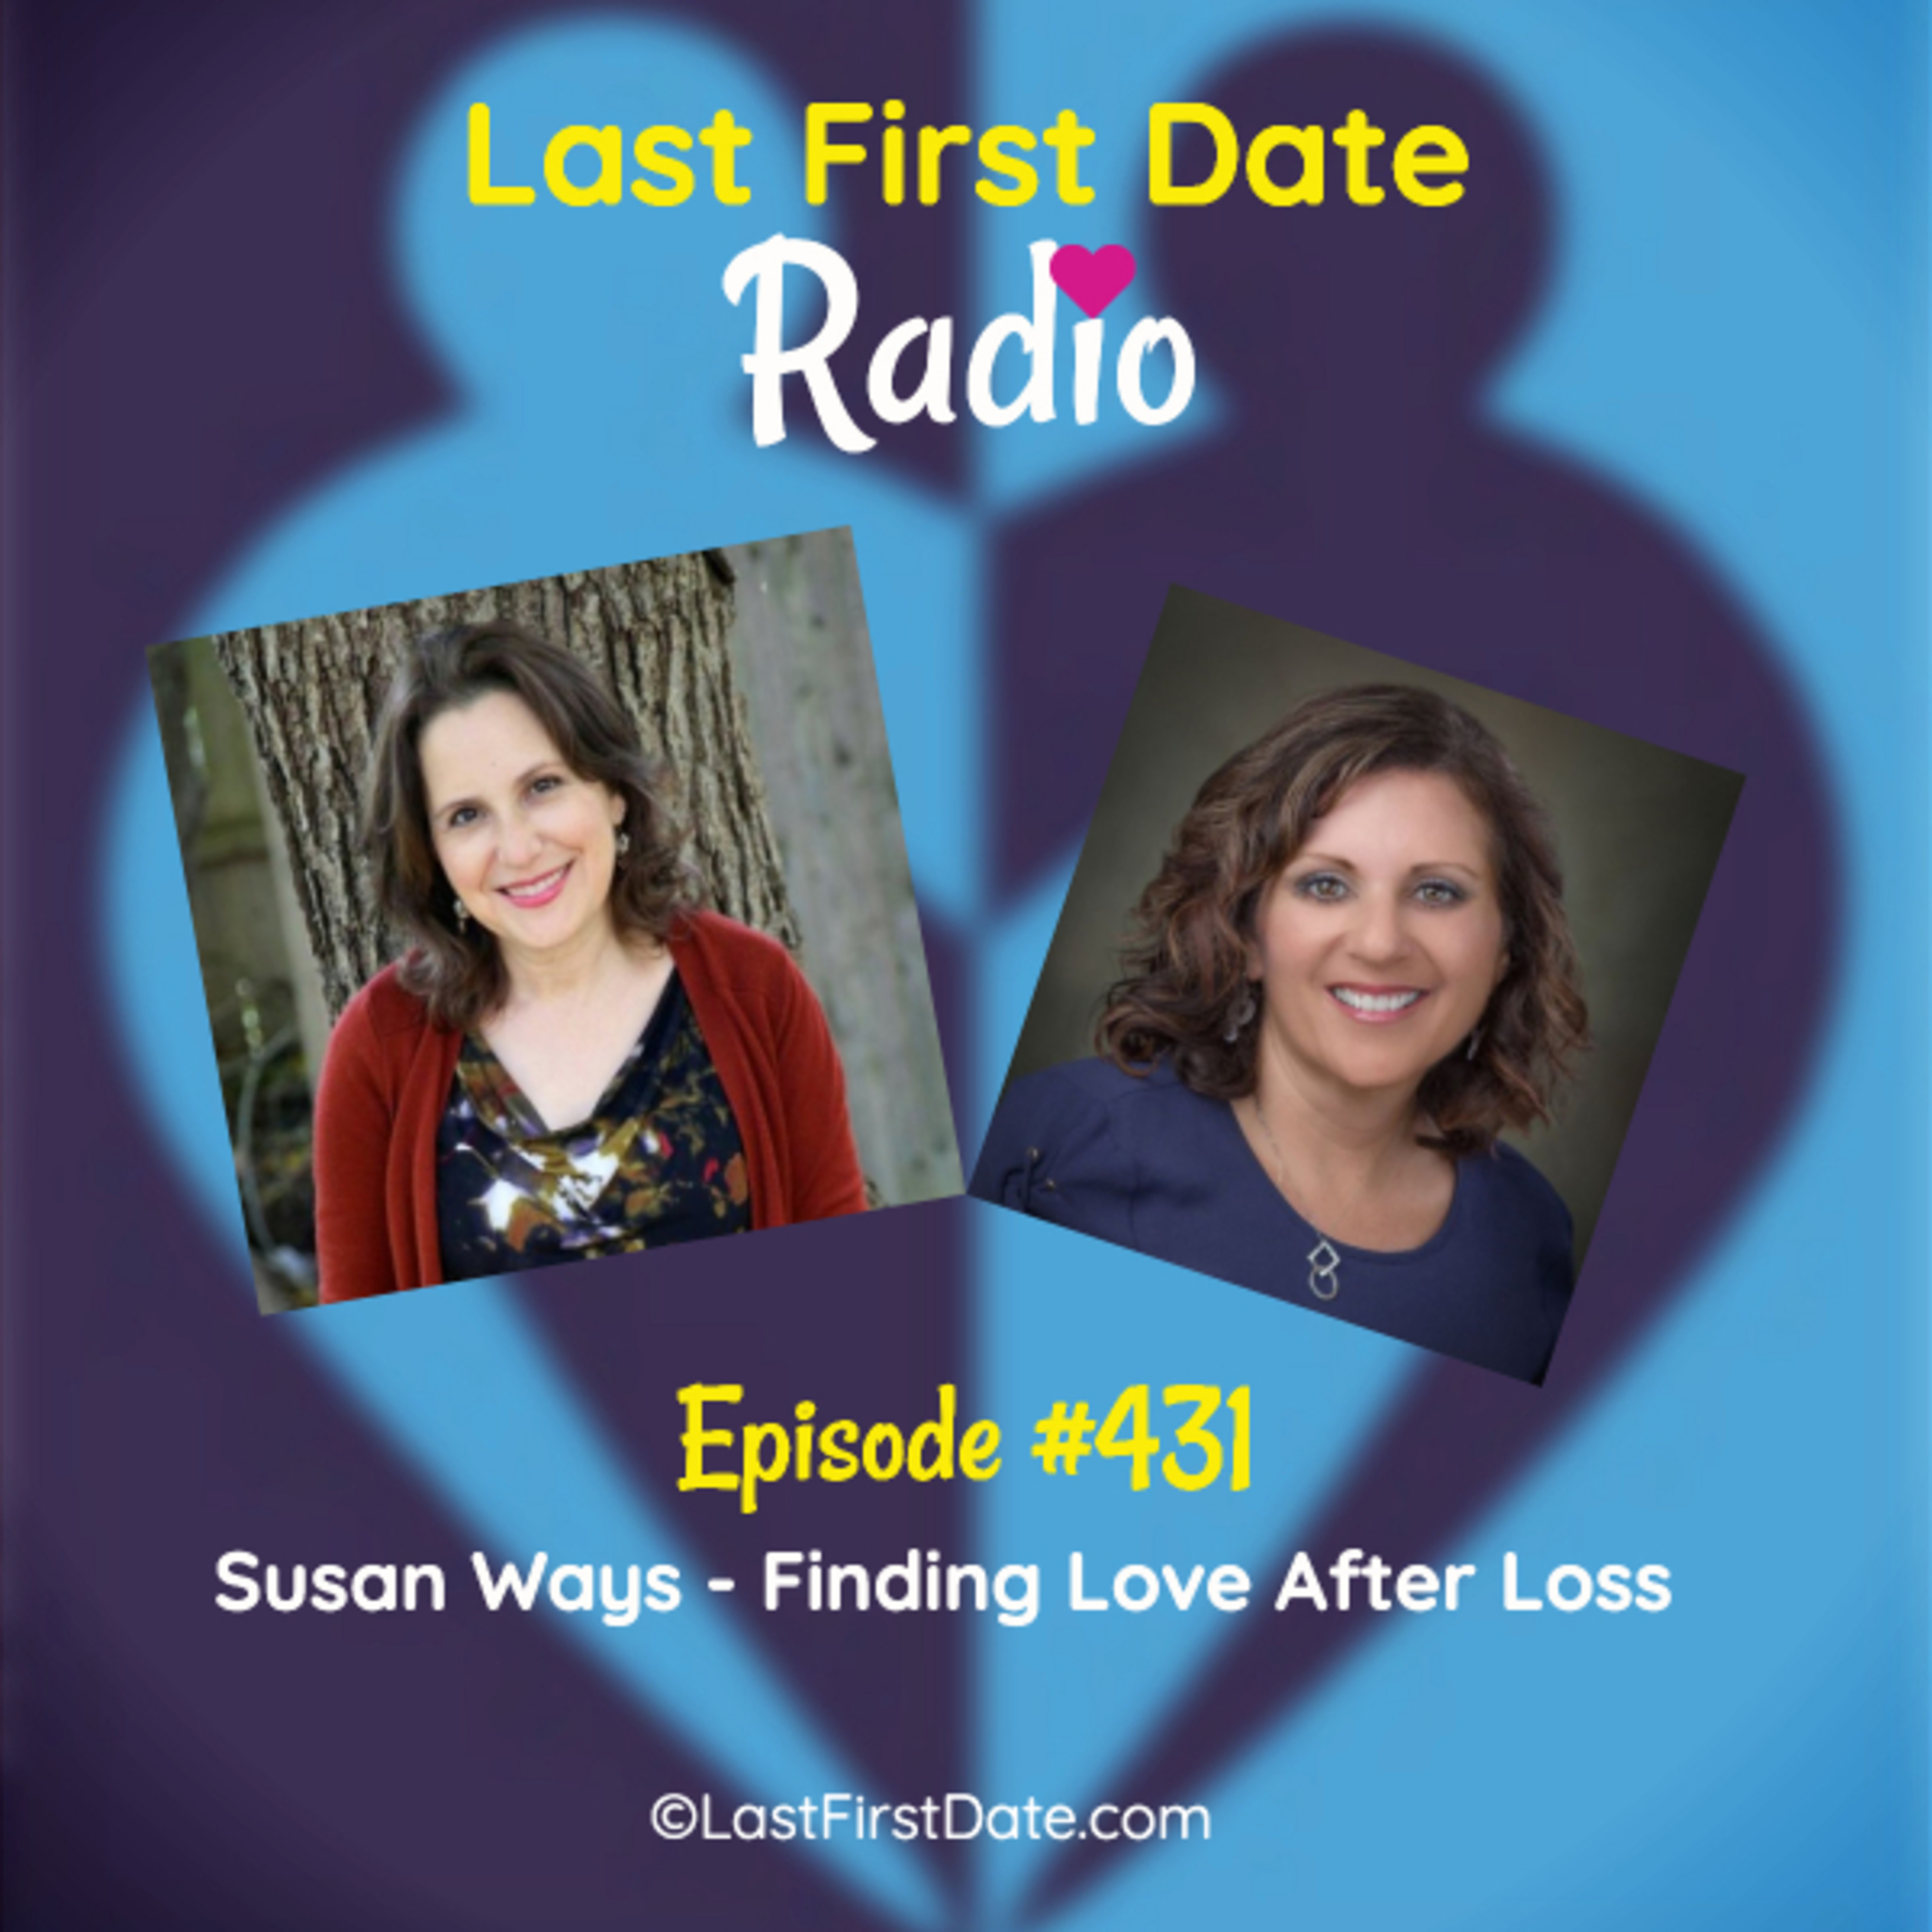 Last First Date Radio - EP 431: Susan Ways - Finding Love After Loss